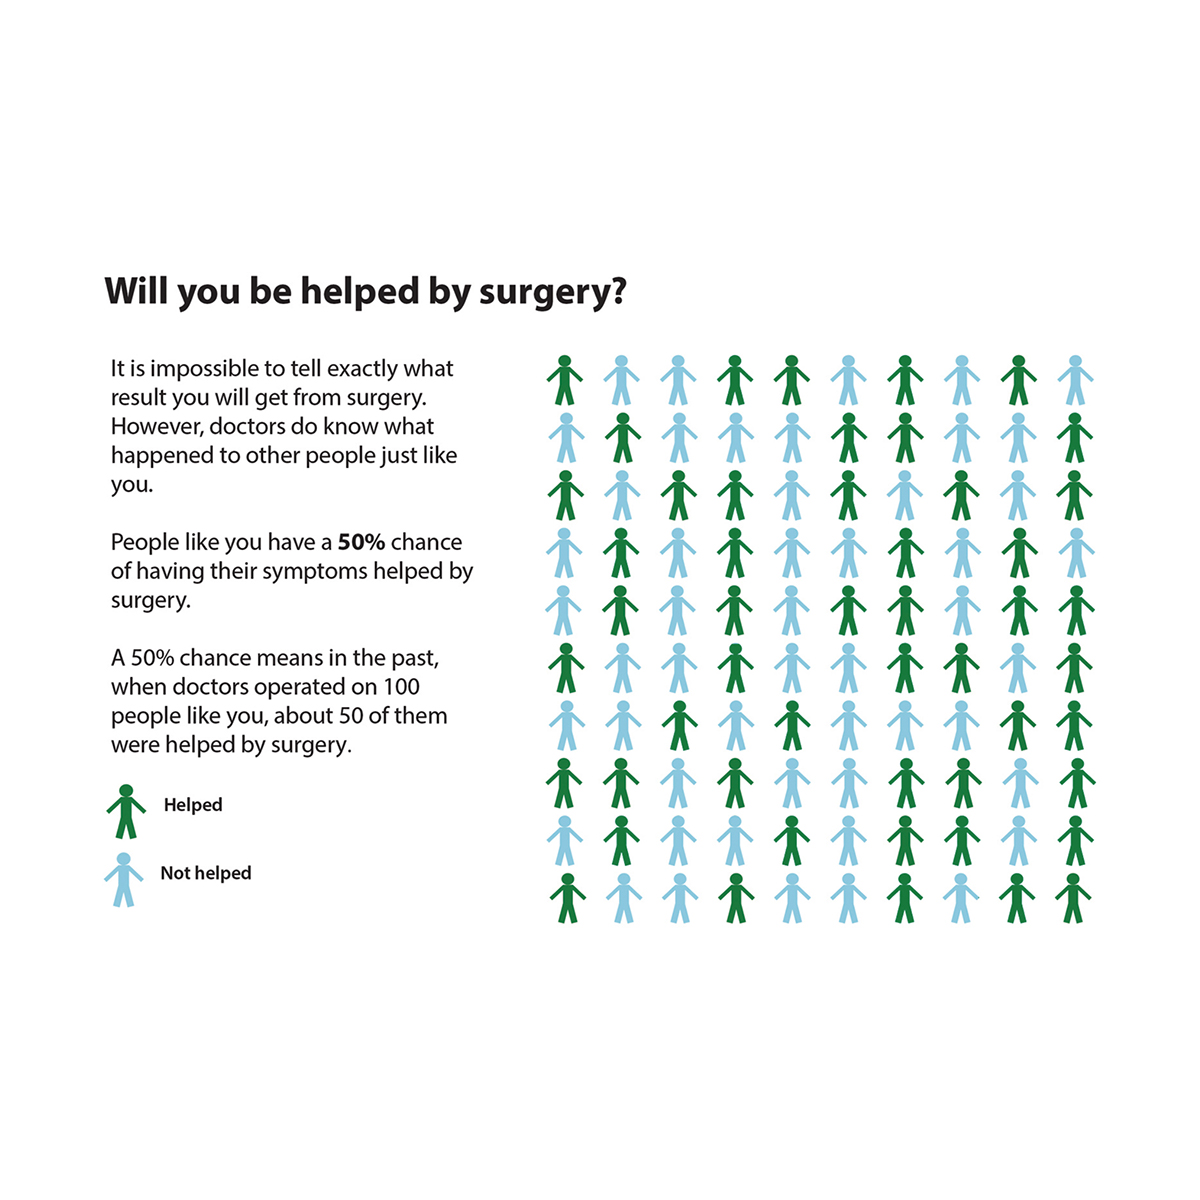 Graphic showing will you be helped by surgery comparison of patient groups.